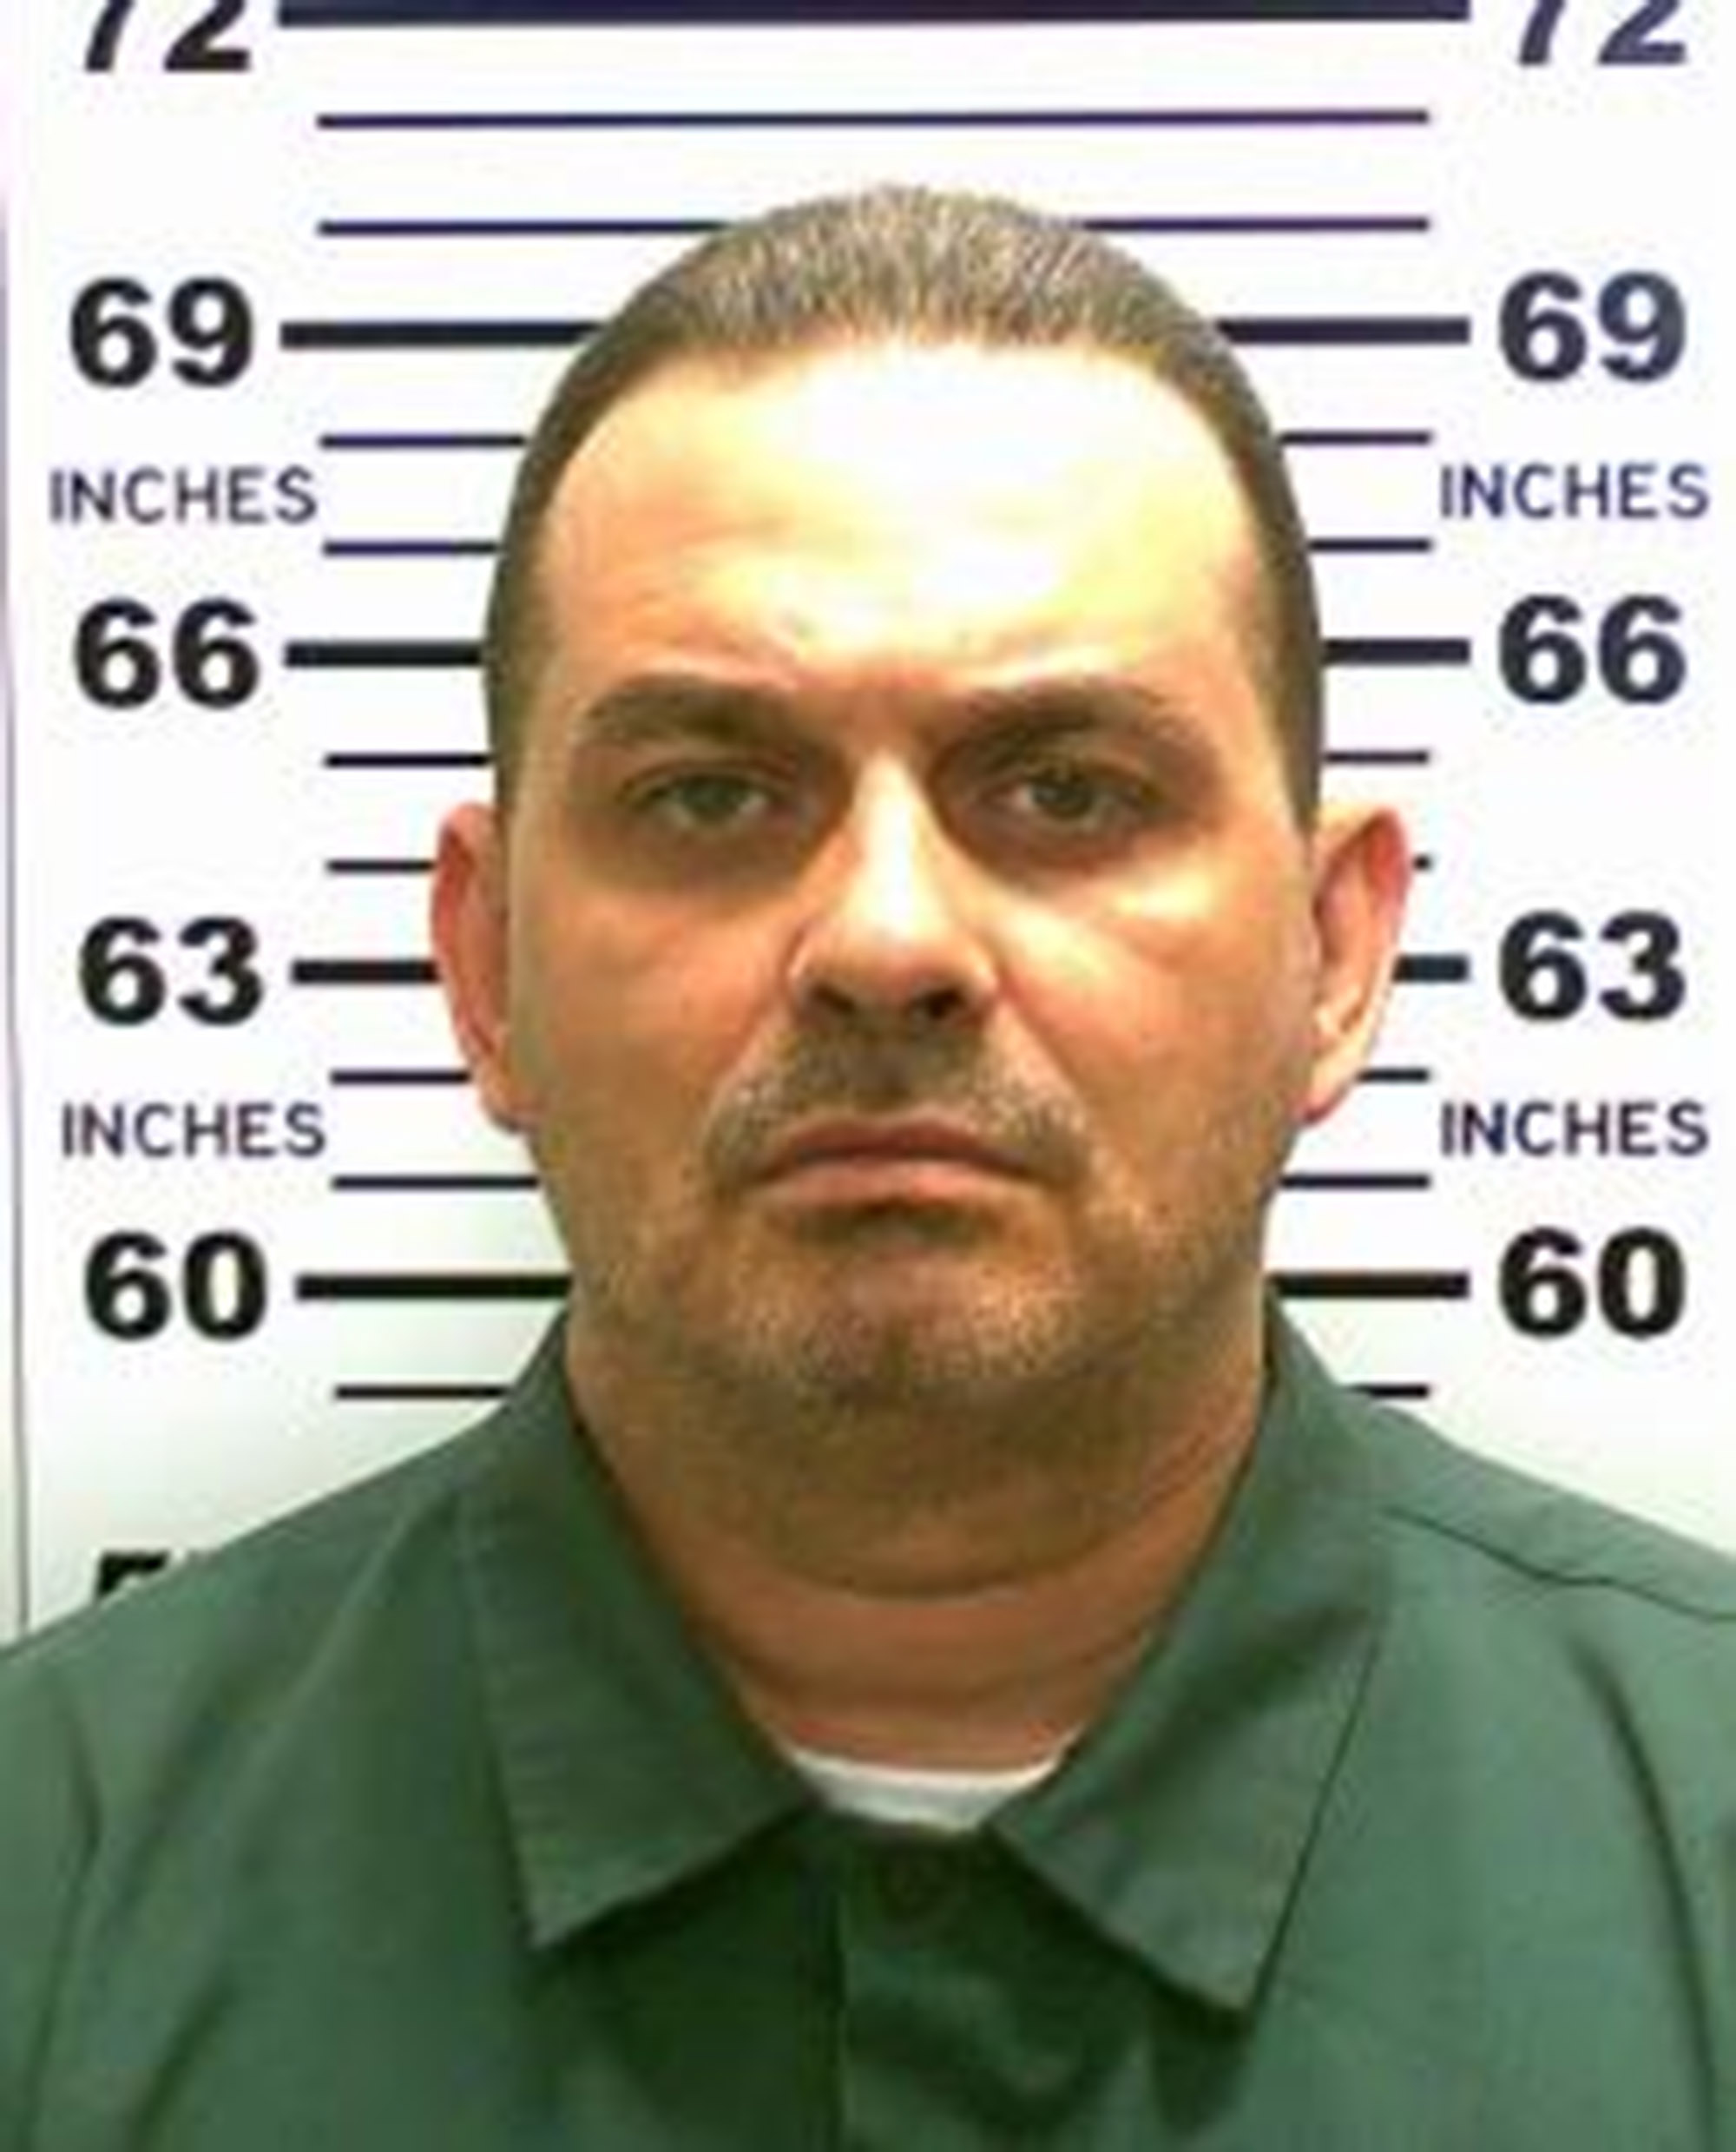 In this handout from New York State Police, convicted murderer Richard Matt is shown.